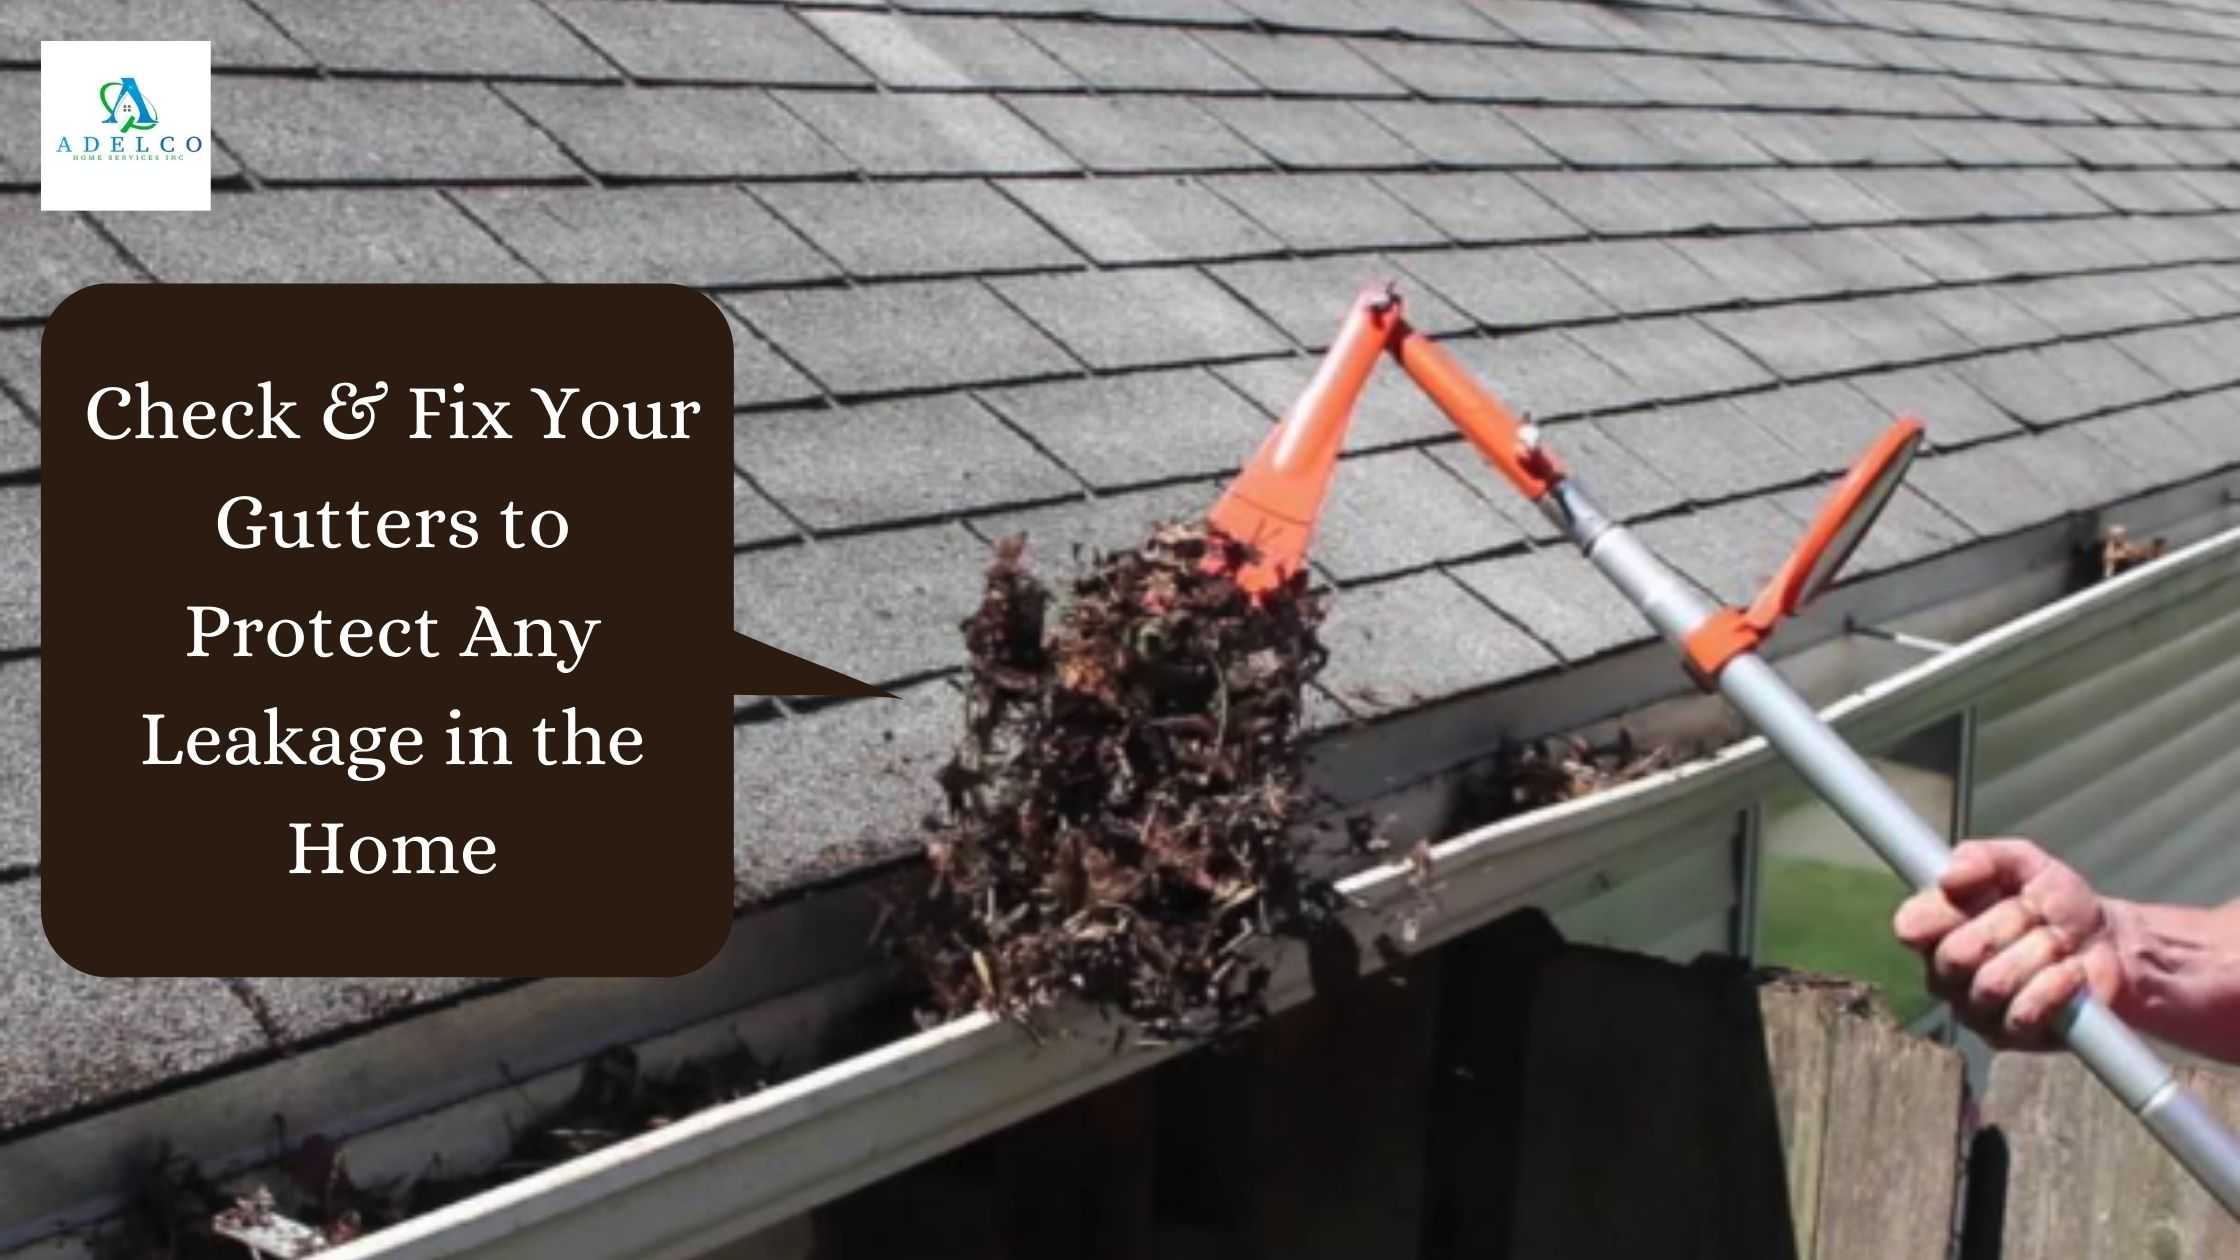 Check & Fix Your Gutters to Protect From Any Leakage